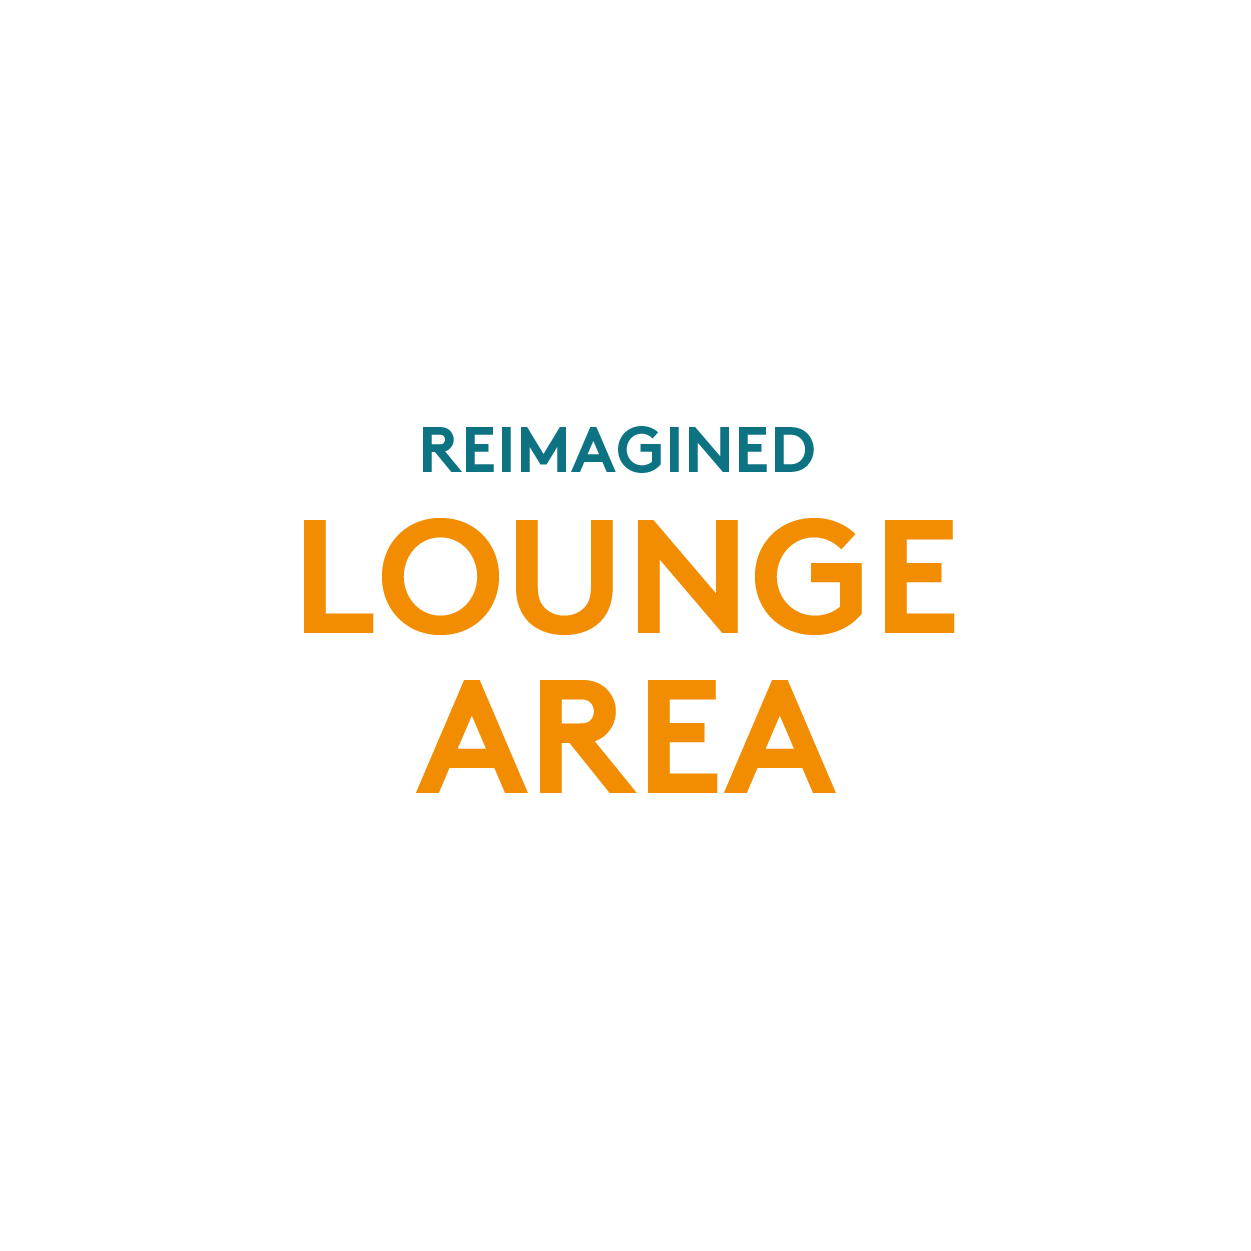 lounge-area-16.png